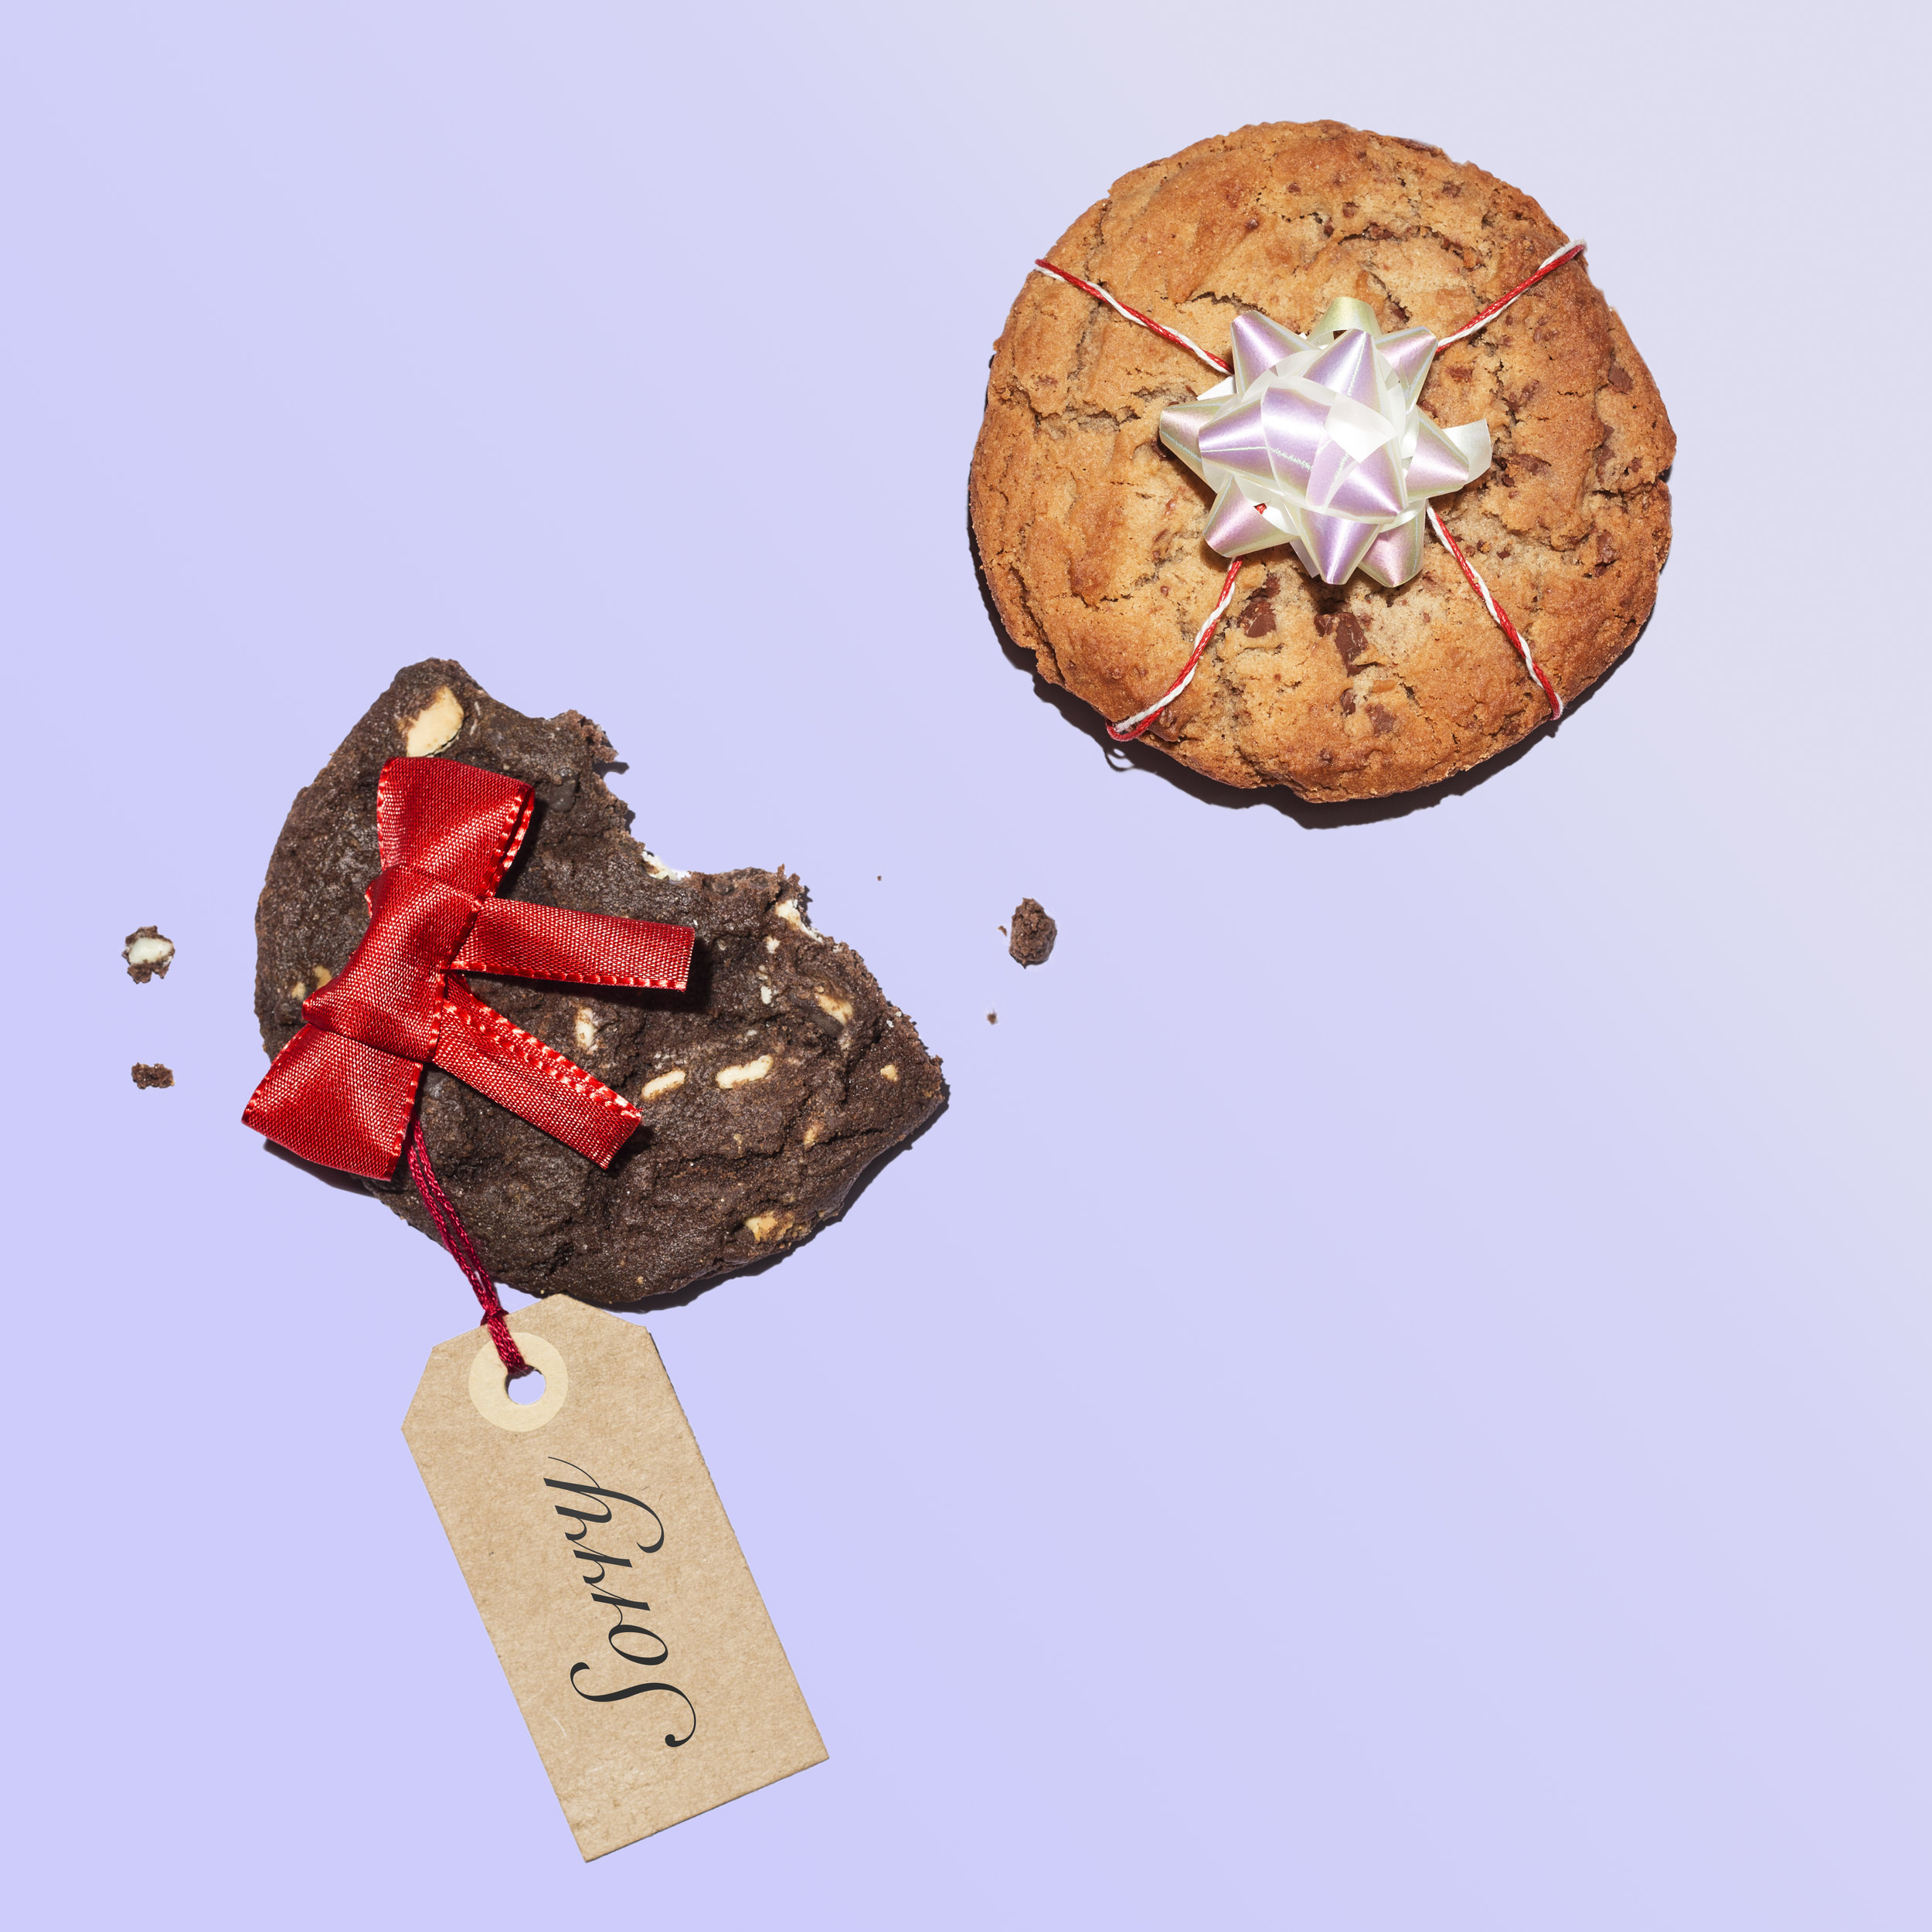 December 22th - Cookie Exchange Day